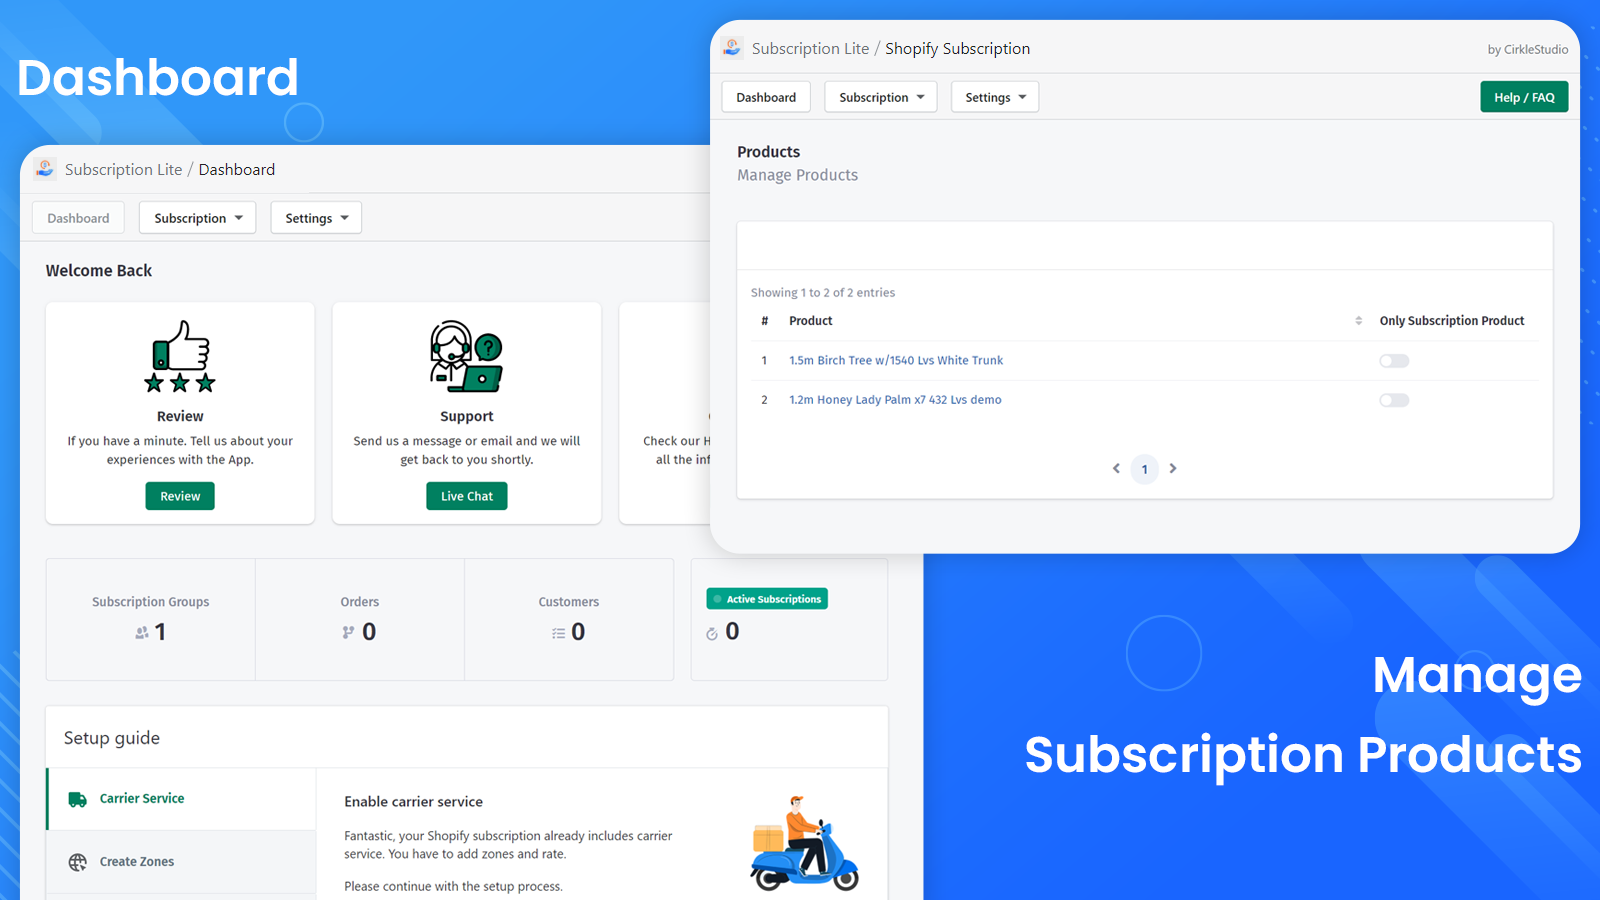 Dashboard and Products